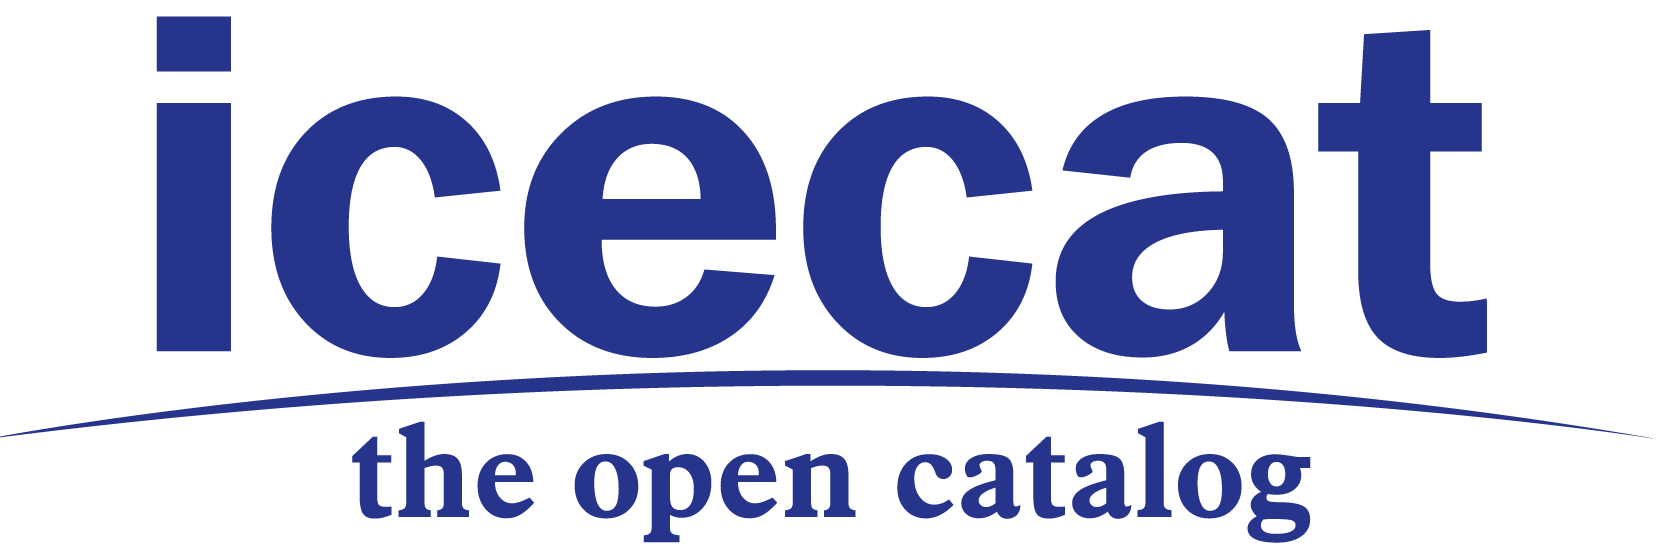 Icecat - The open product catalog